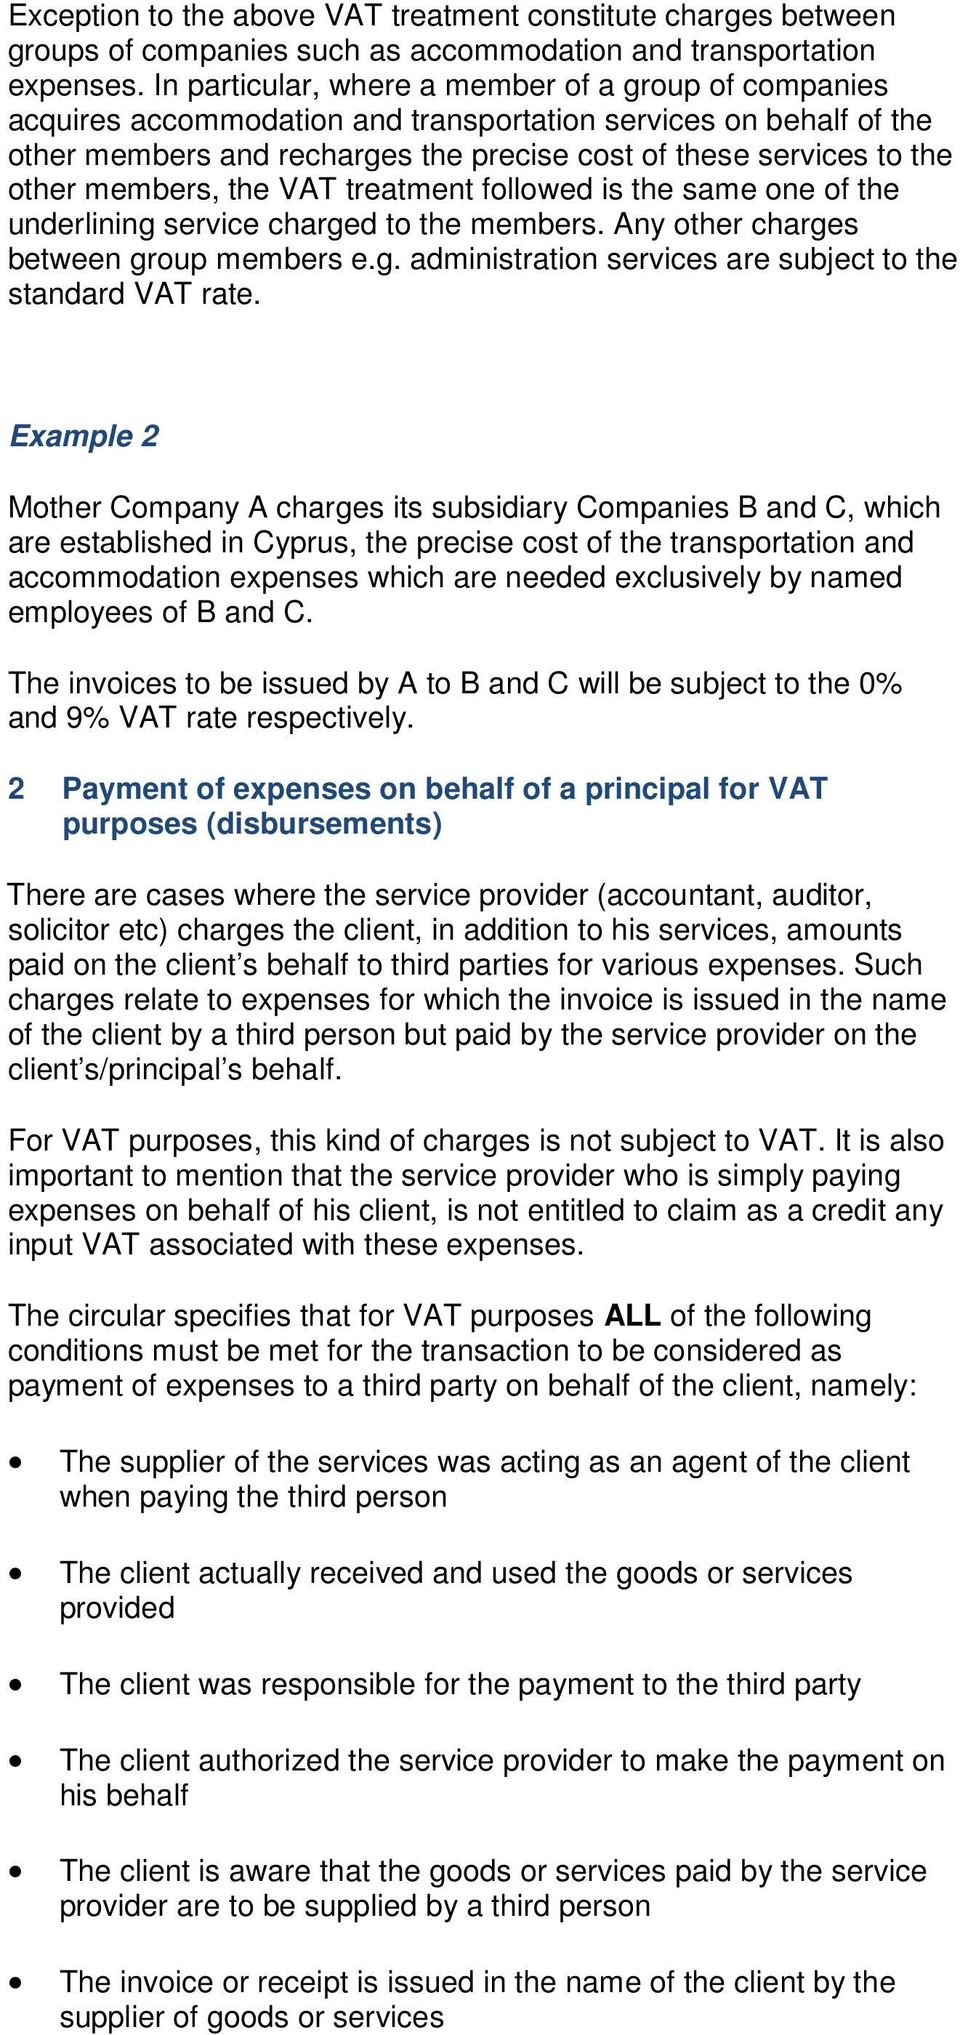 members, the VAT treatment followed is the same one of the underlining service charged to the members. Any other charges between group members e.g. administration services are subject to the standard VAT rate.